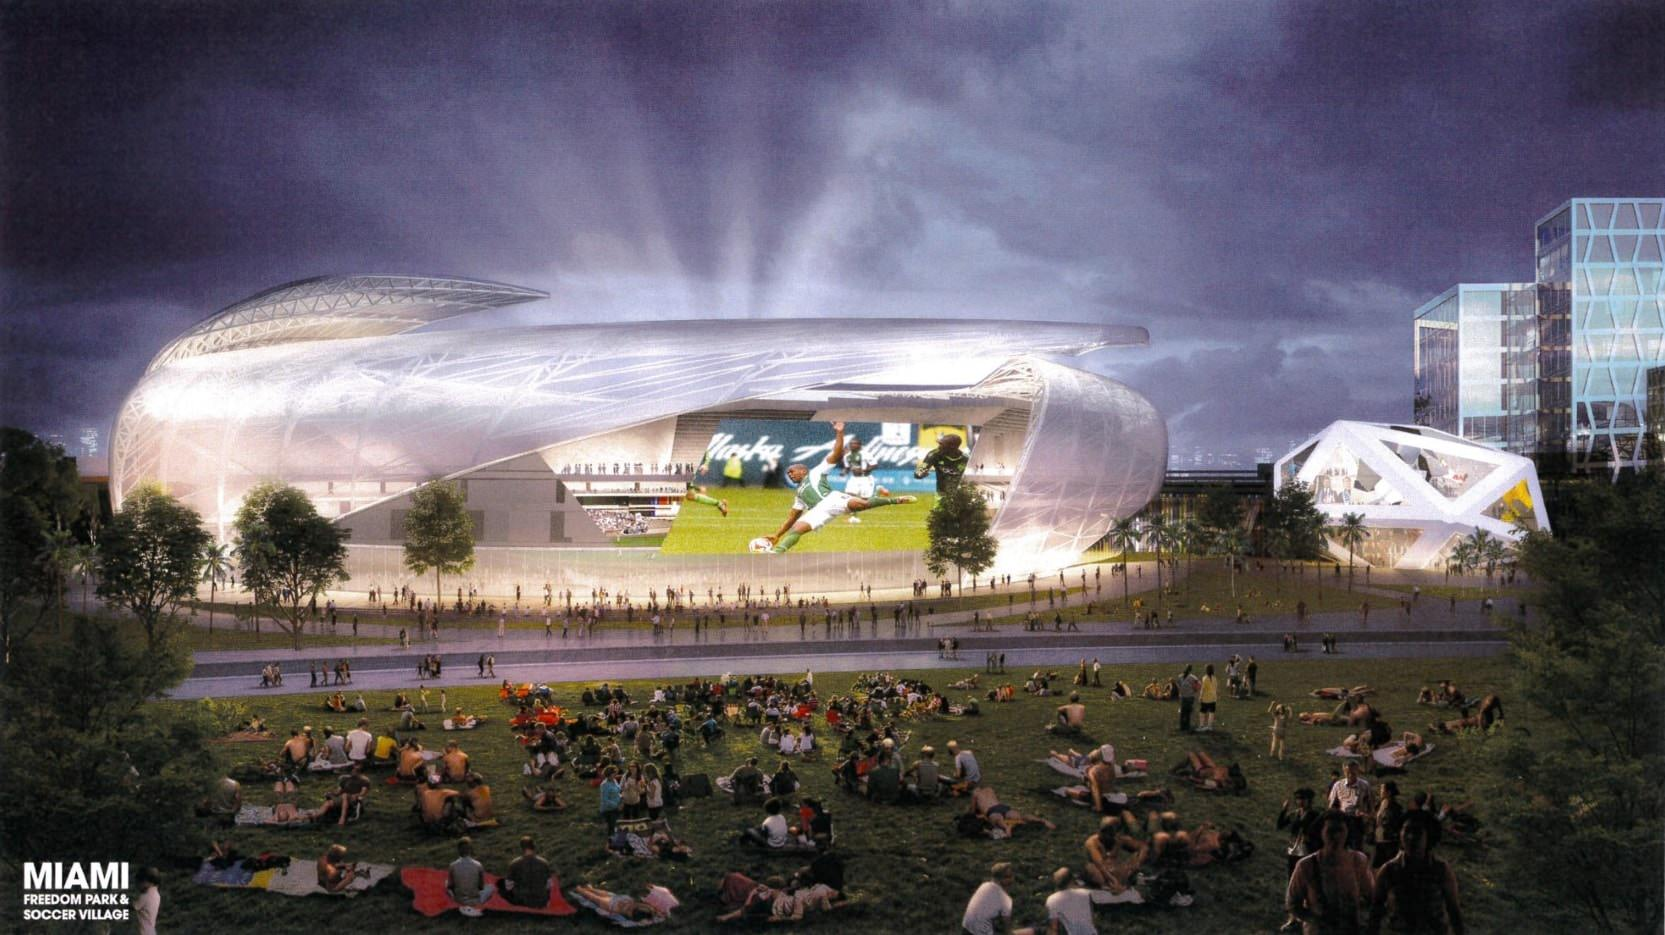 Voters Approve David Beckham's $1 Billion Freedom Park By Waiving Competitive Bidding On Election Day